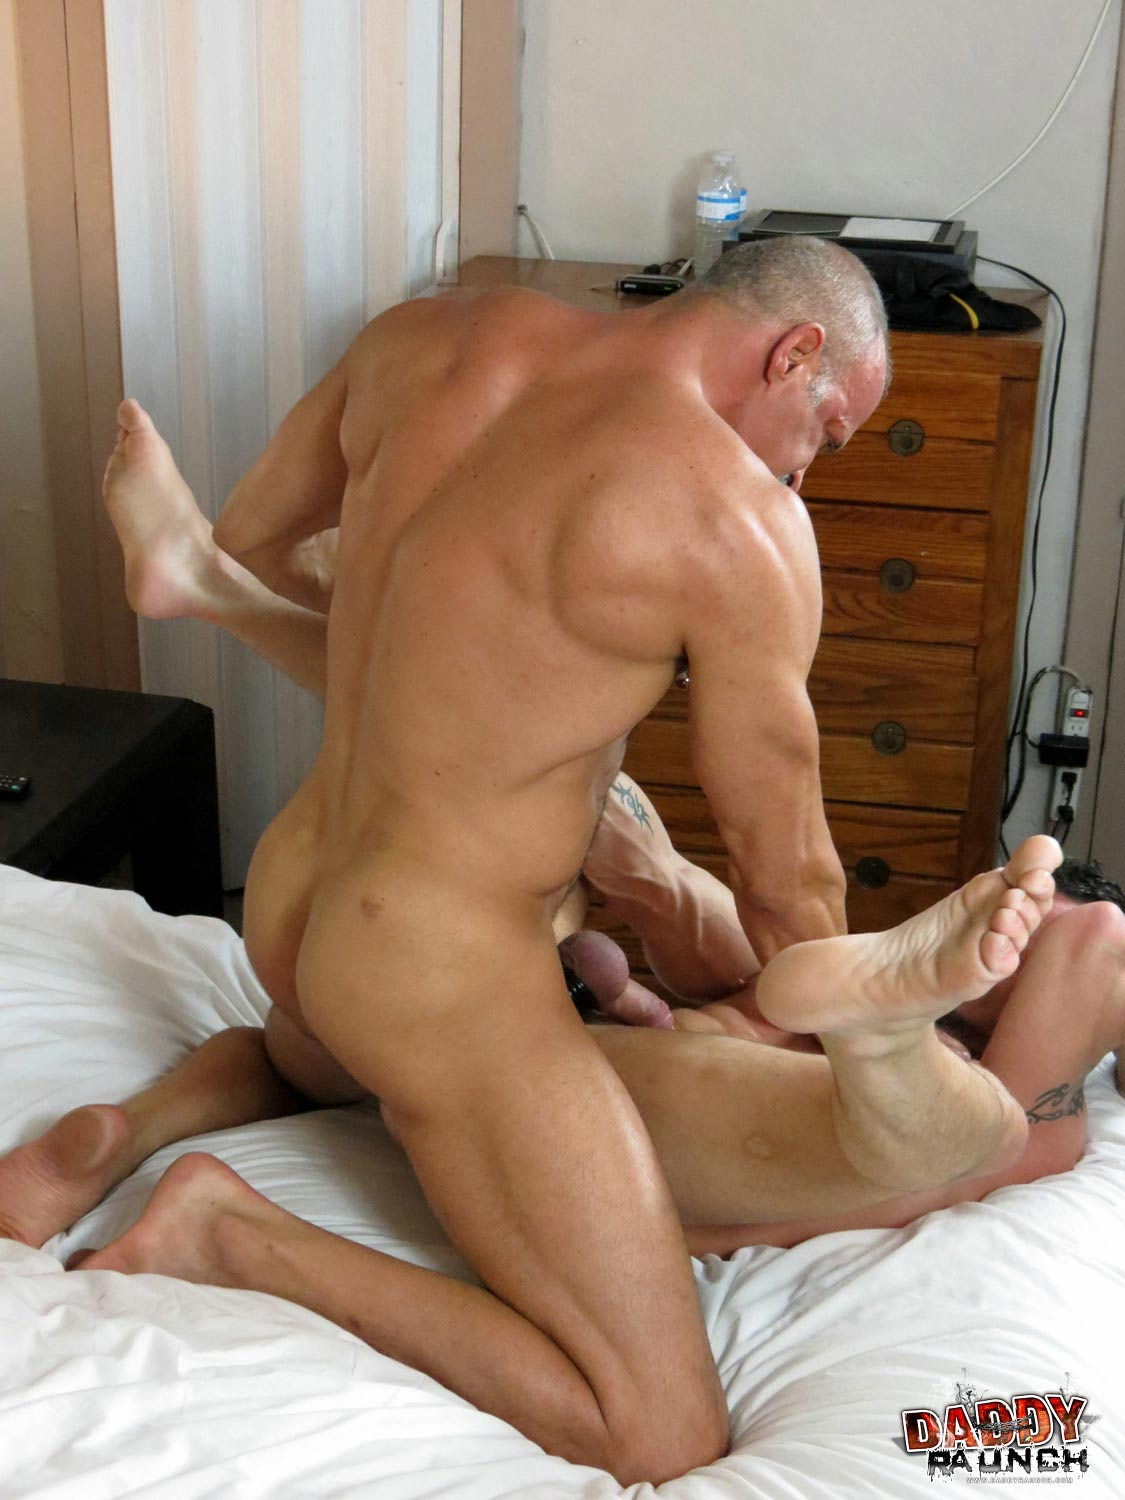 Coach fucks jock men fucking love dolls gay